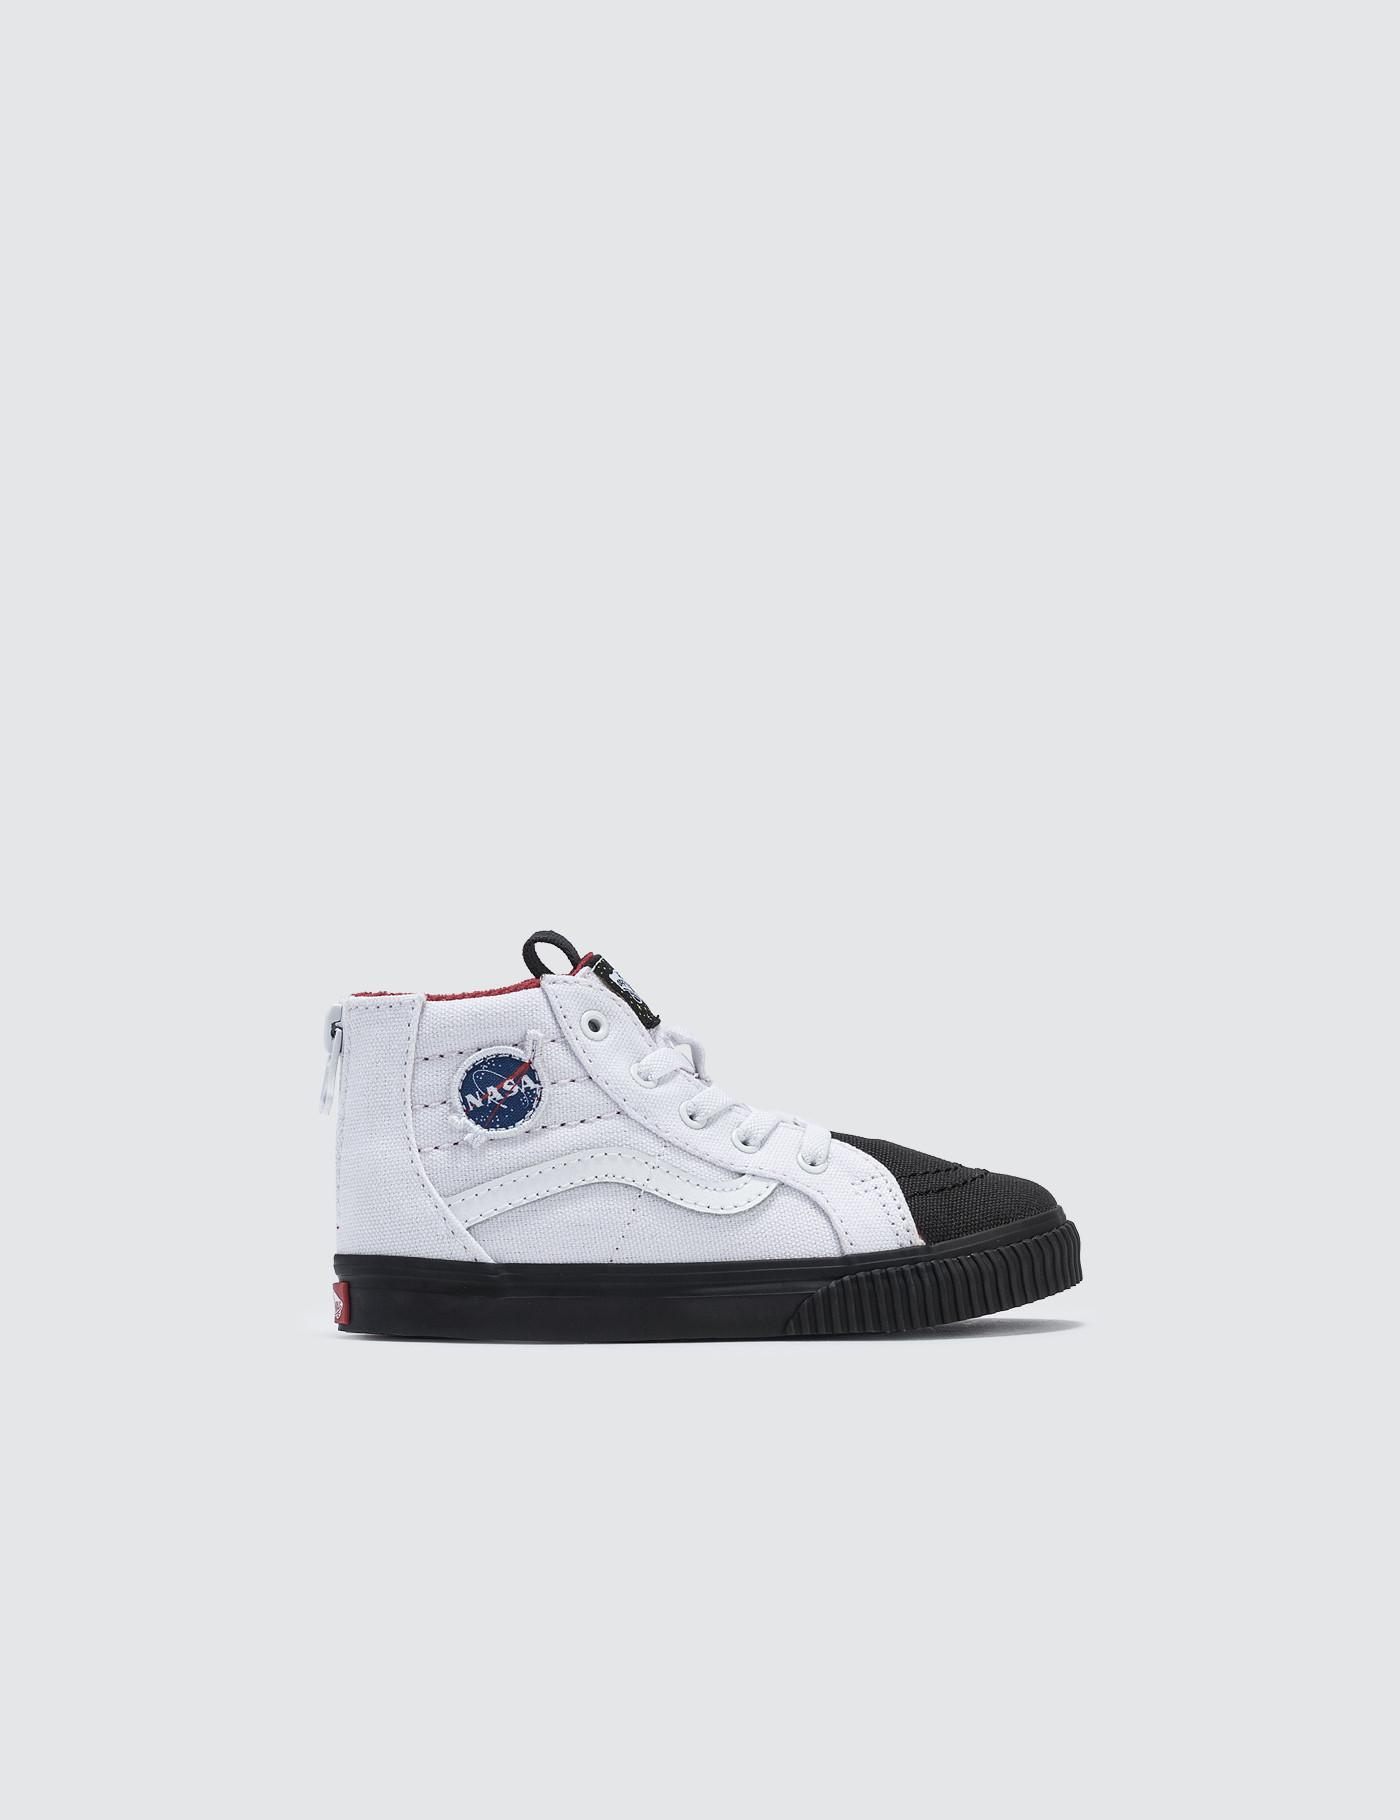 c78fafa5a47 Vans Space Voyager Sk8-hi Mte Zip Toddlers in White for Men - Lyst